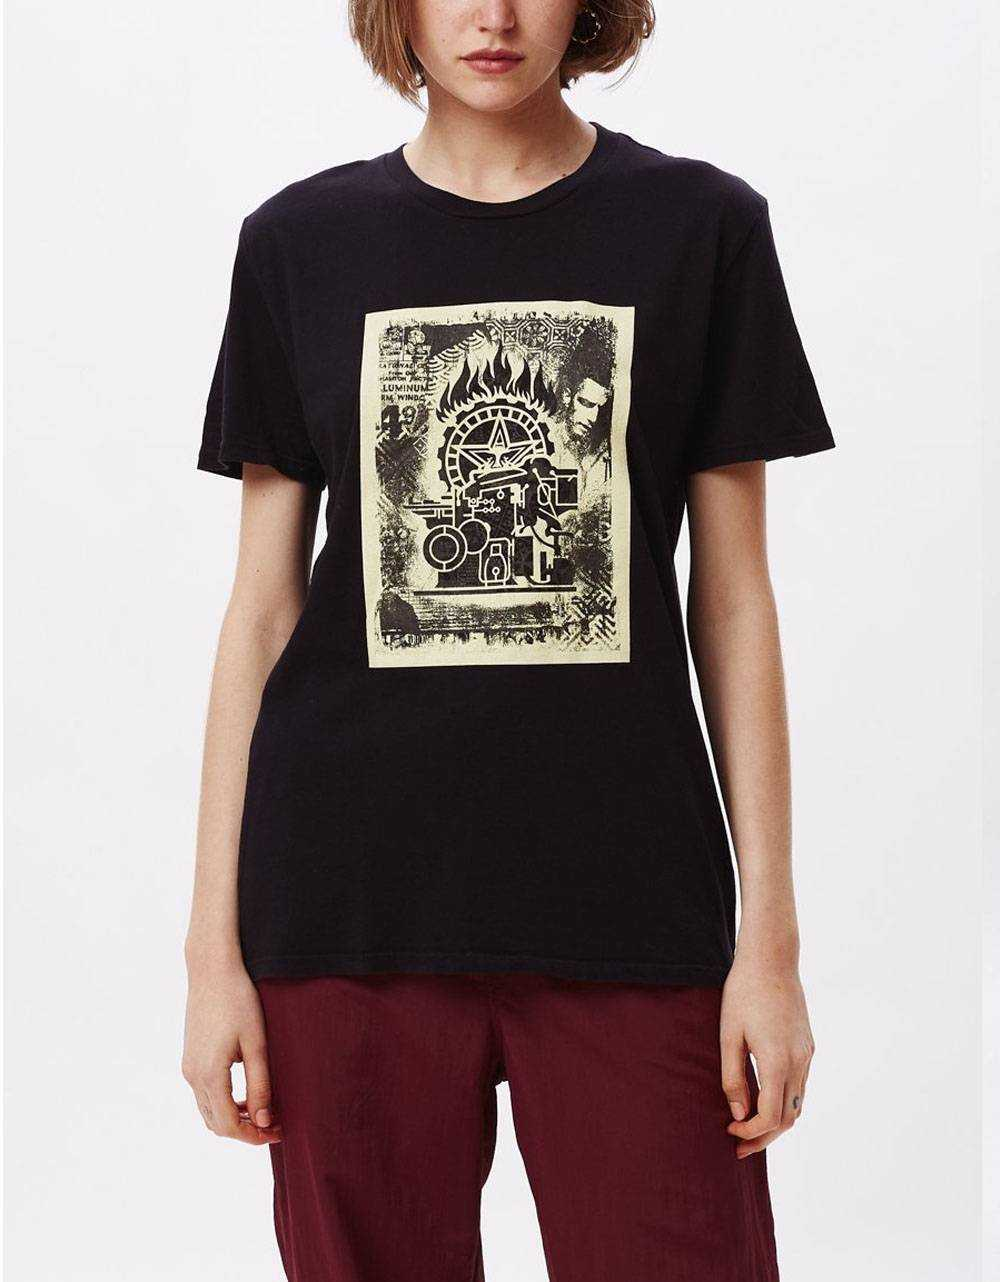 Obey Woman press etching classic tee - black obey T-shirt 36,89€